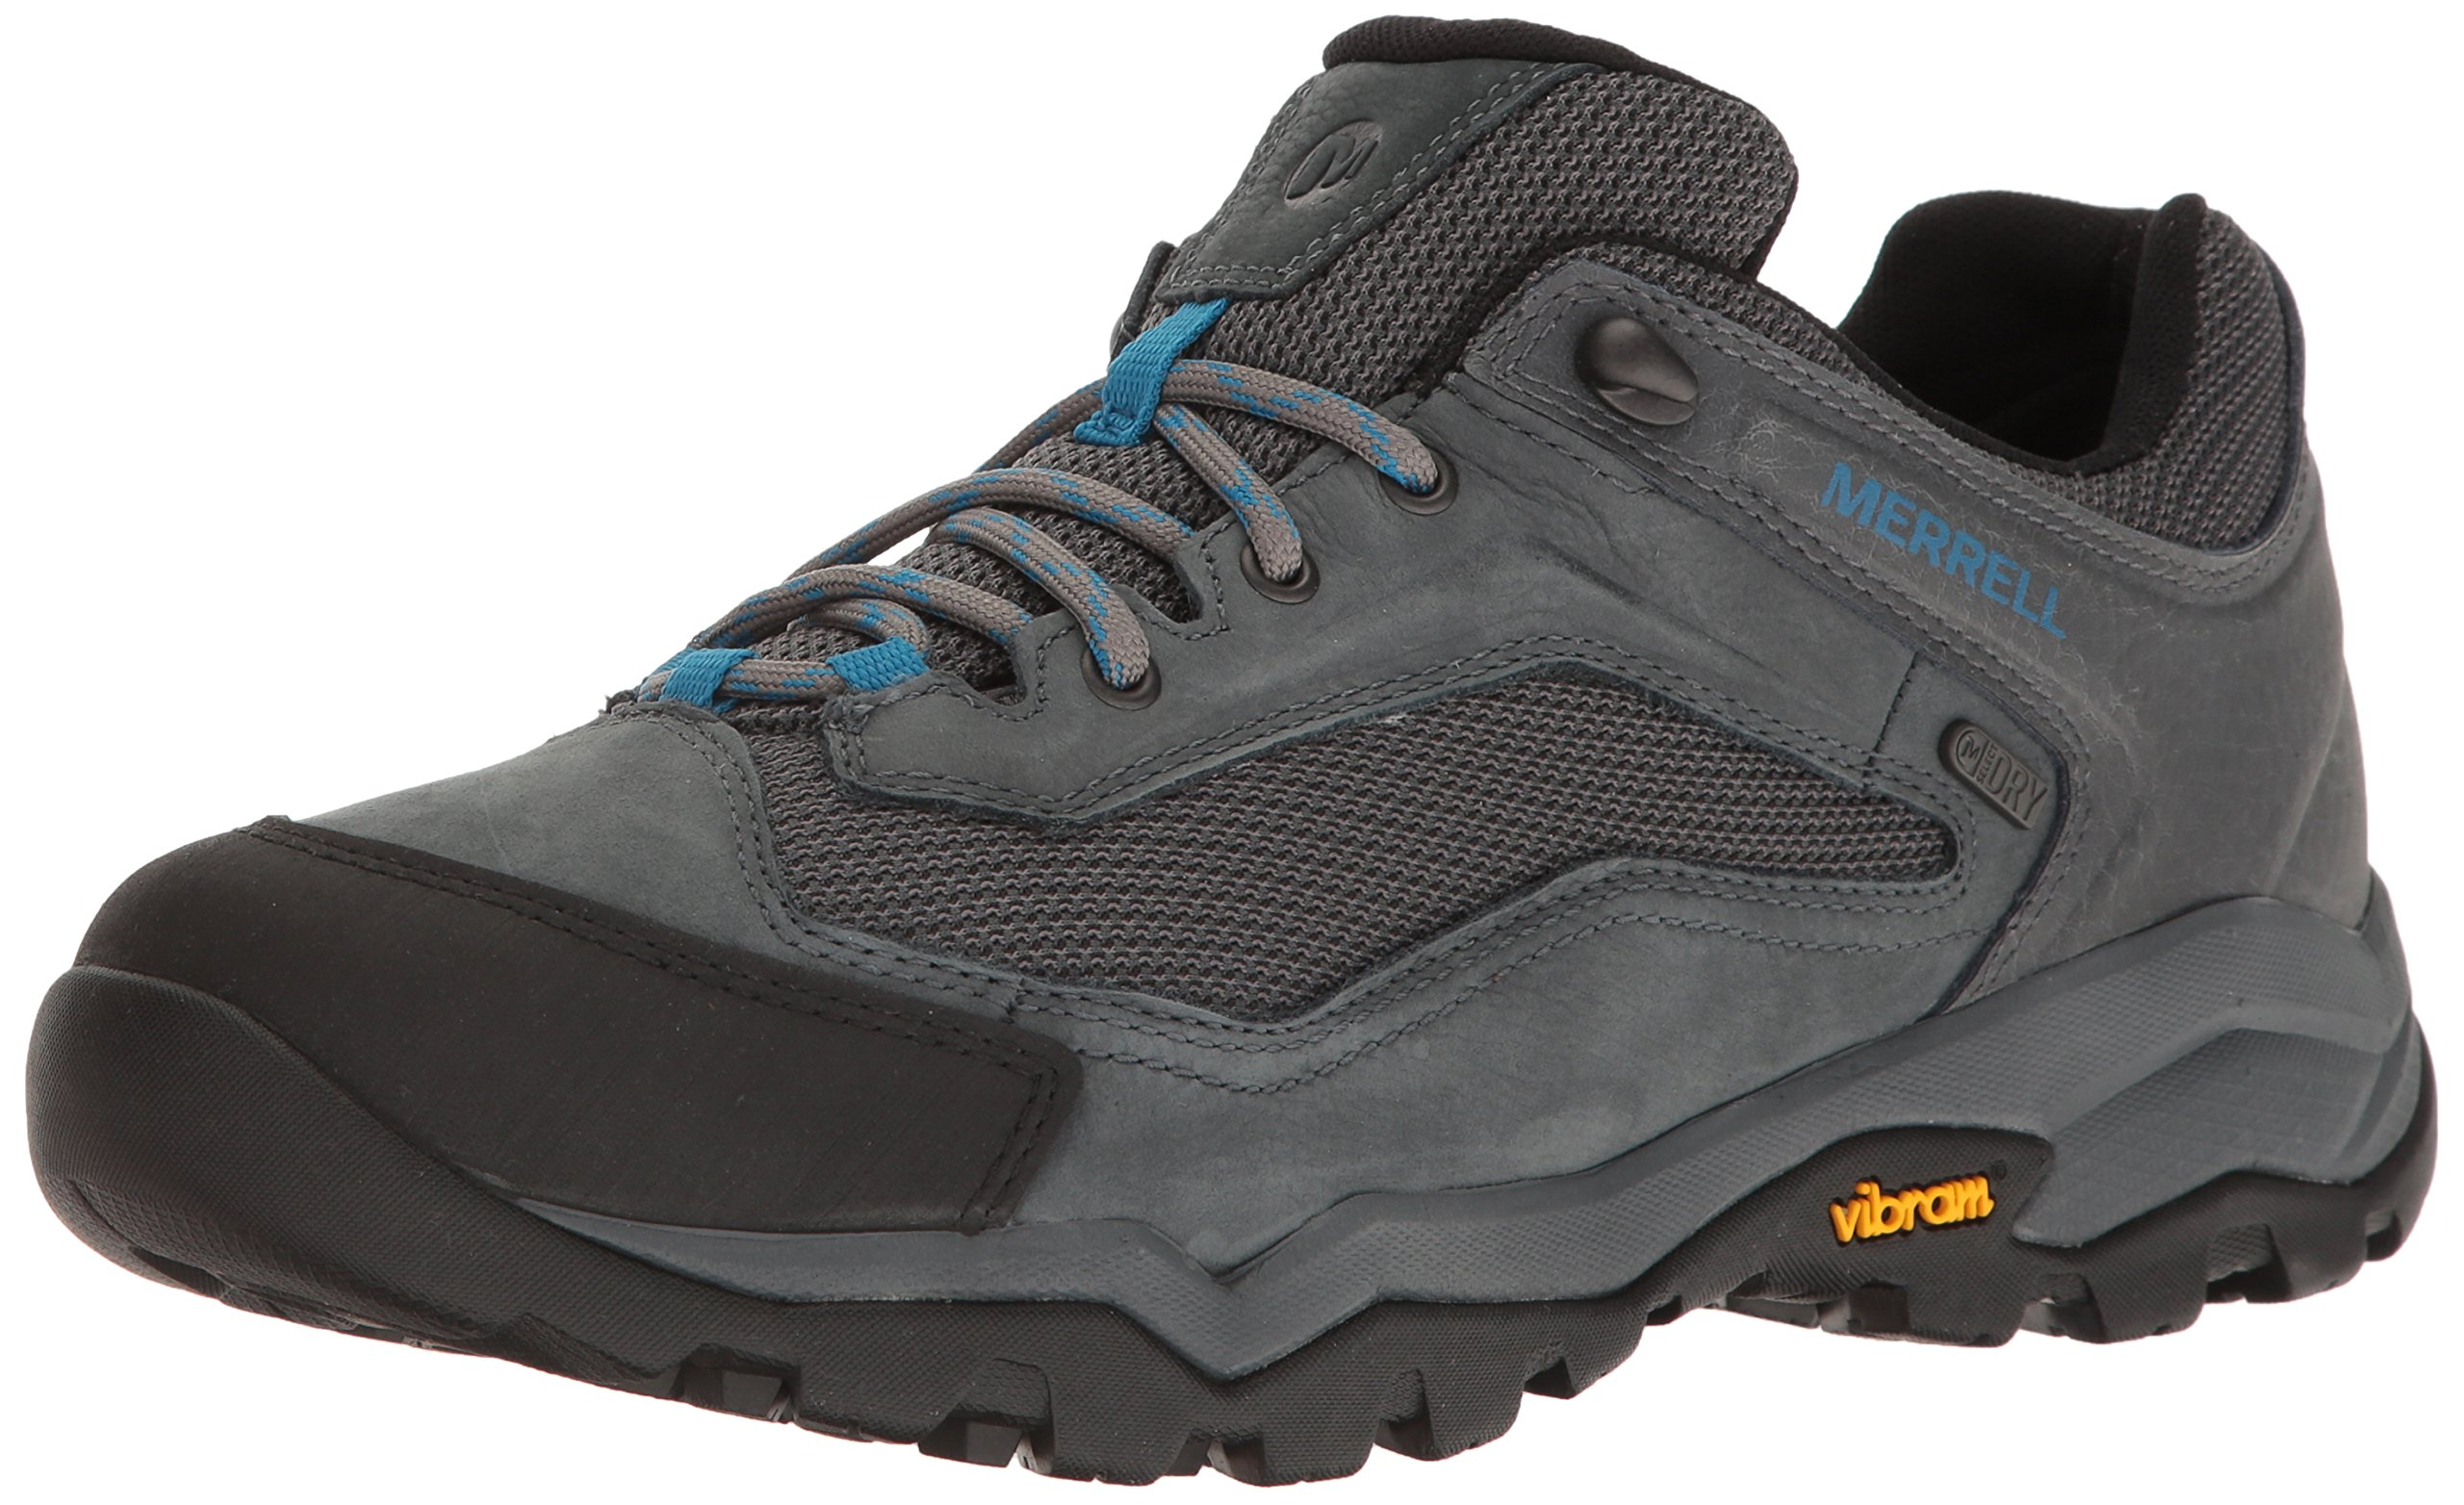 Merrell Men's Everbound Vent Waterproof Backpacking Boot, Turbulence, 8 M US